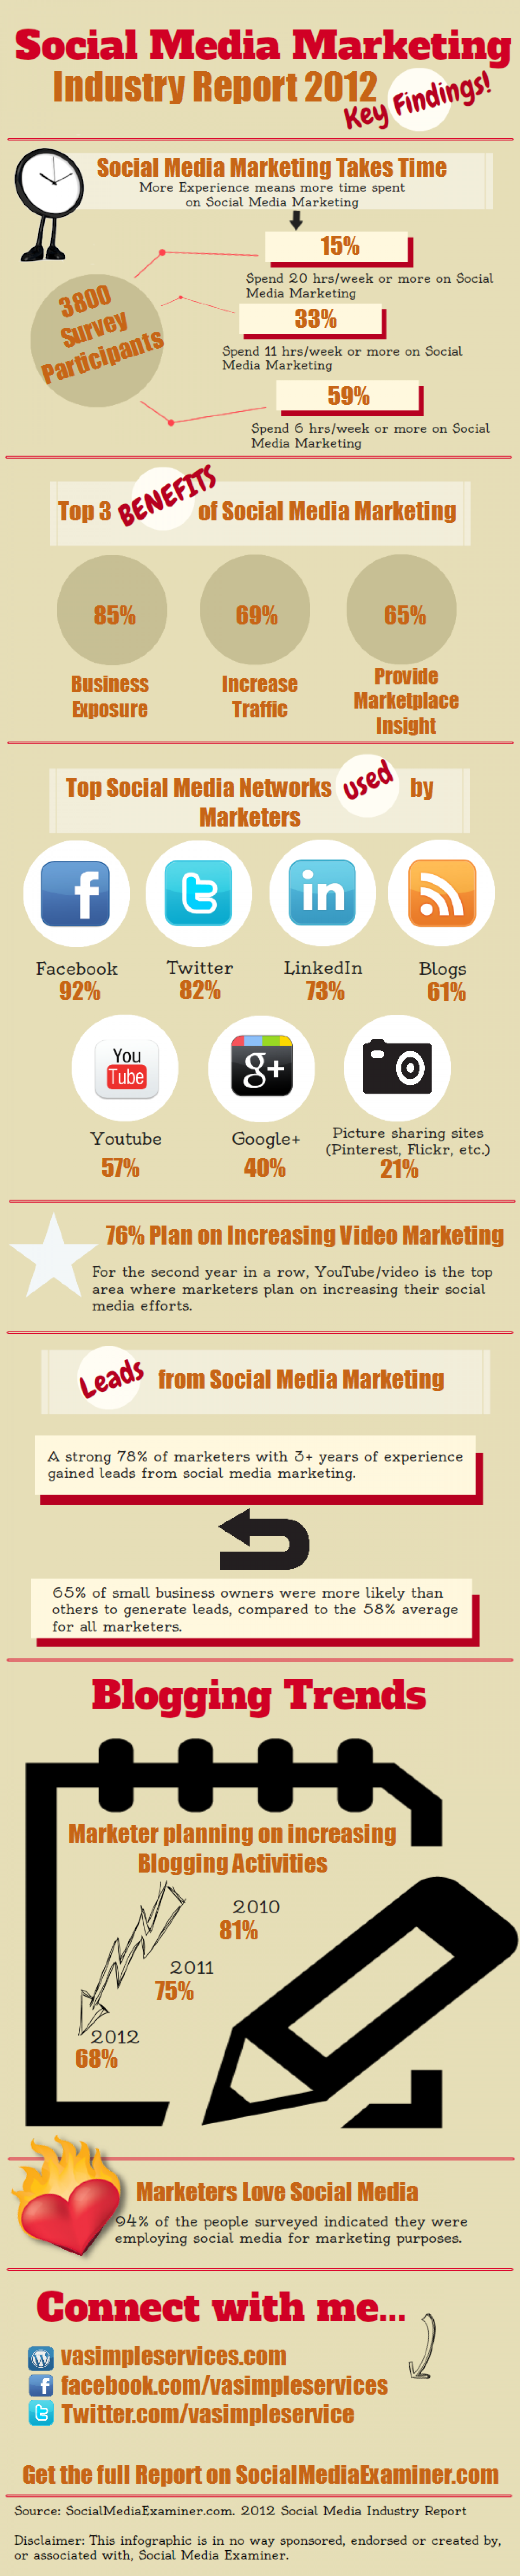 Social Media Marketing Industry Report Infographic